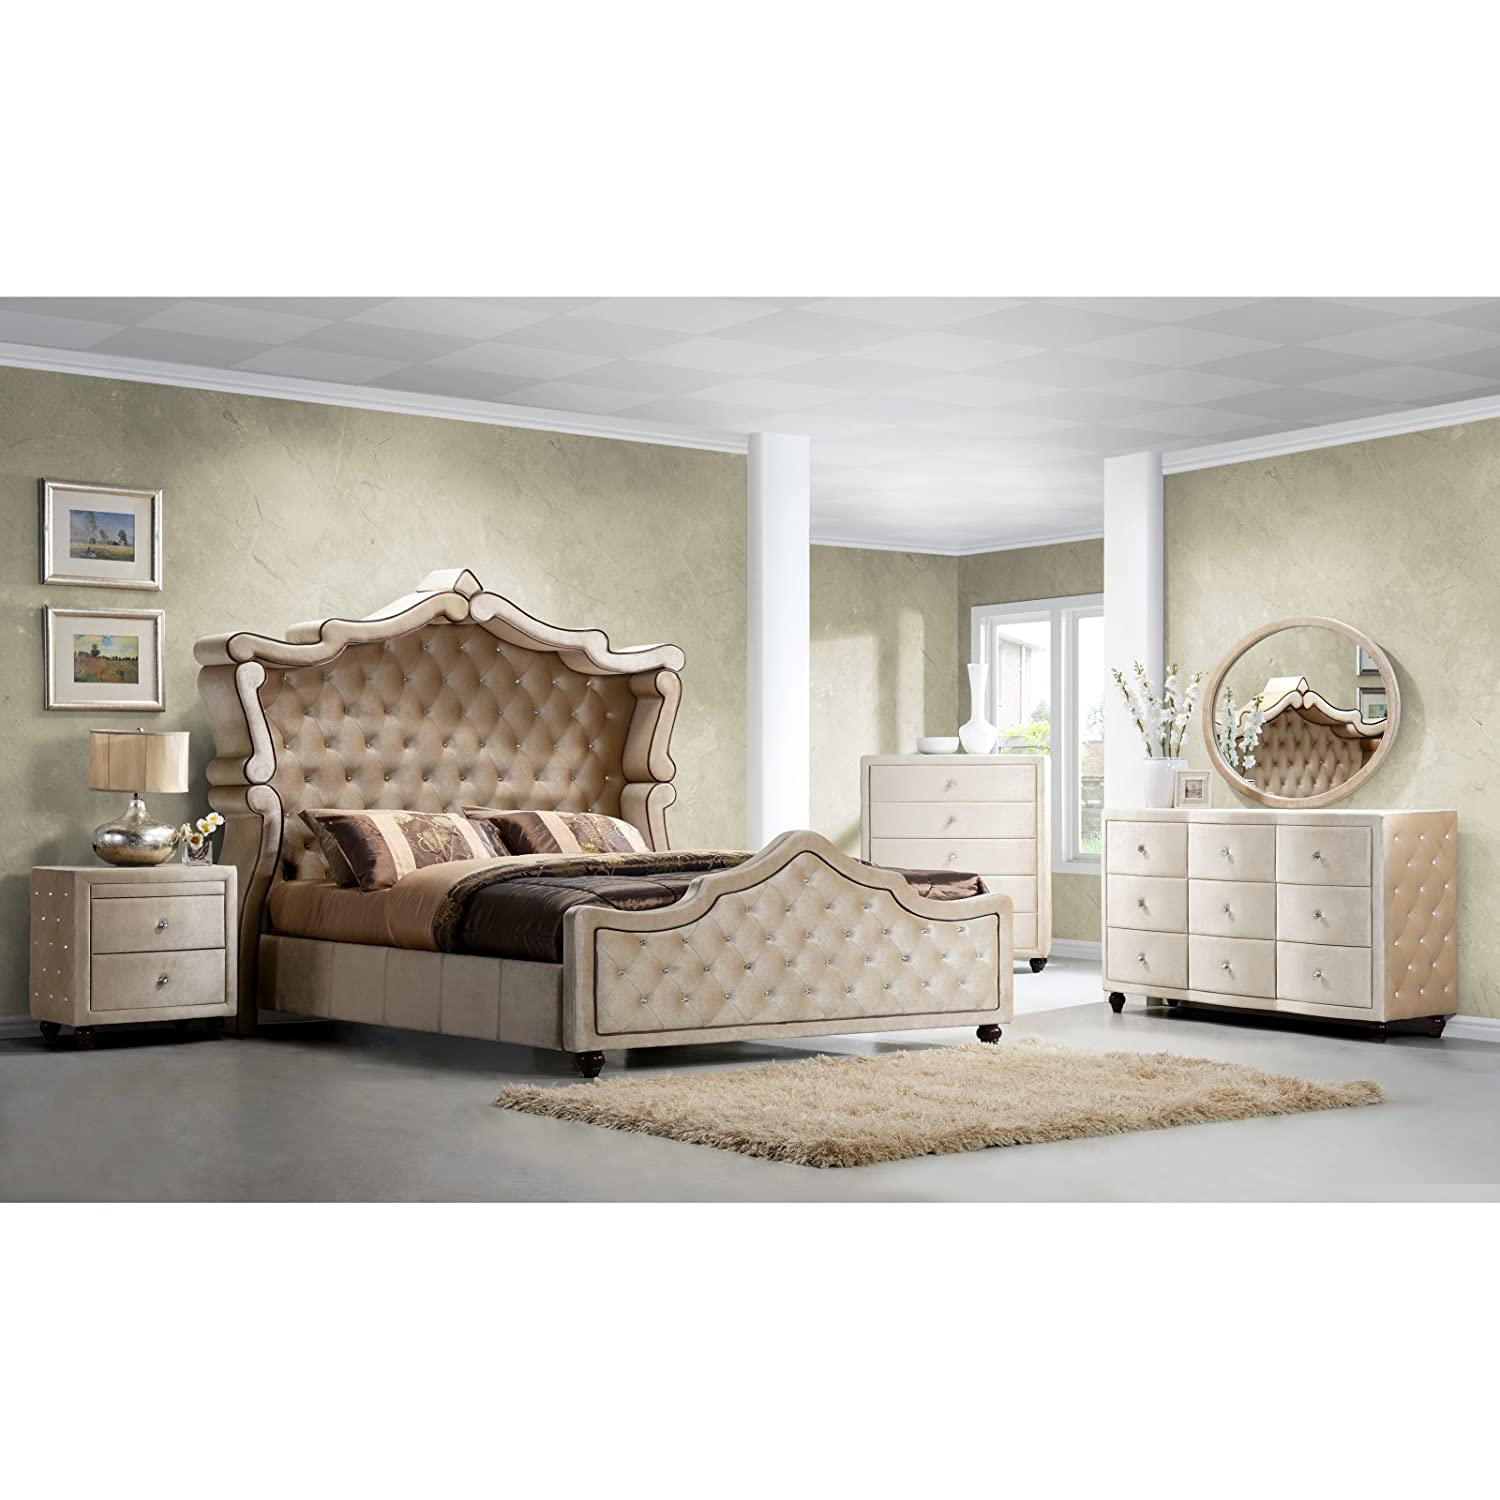 Amazon.com: Meridian Furniture Diamond Canopy Velvet Bed, King: Kitchen U0026  Dining